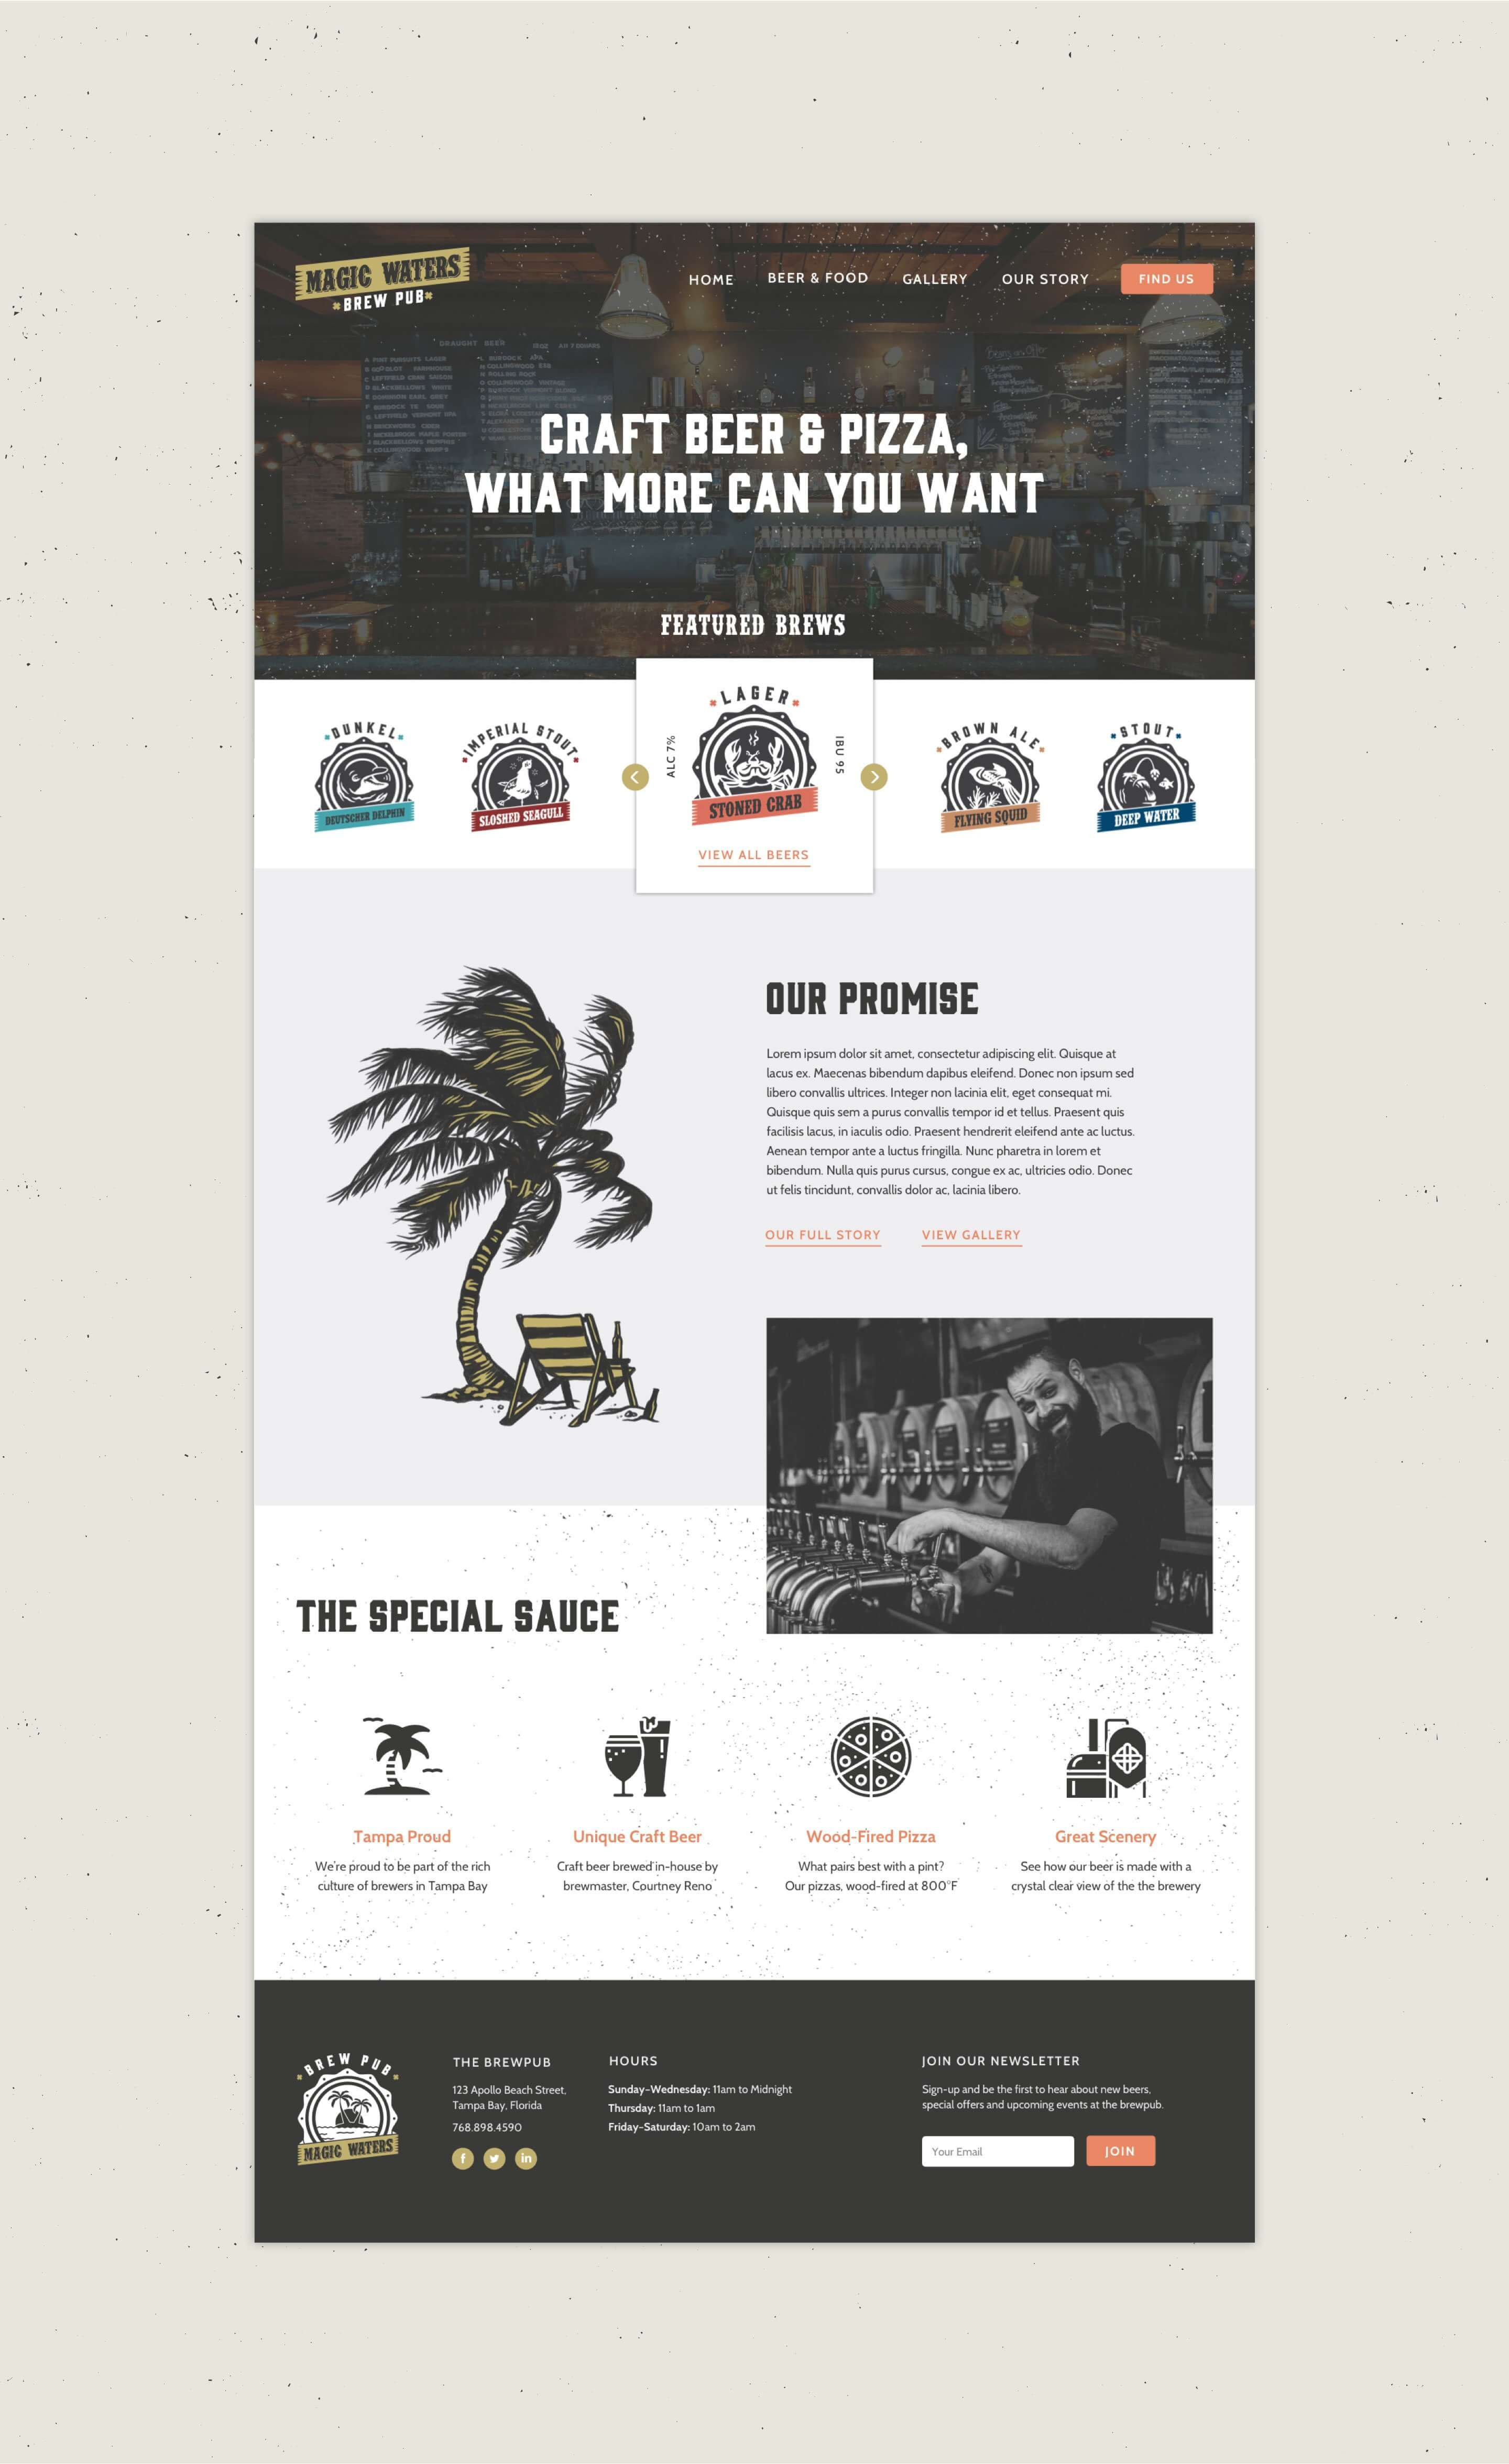 magic waters brewery responsive website design